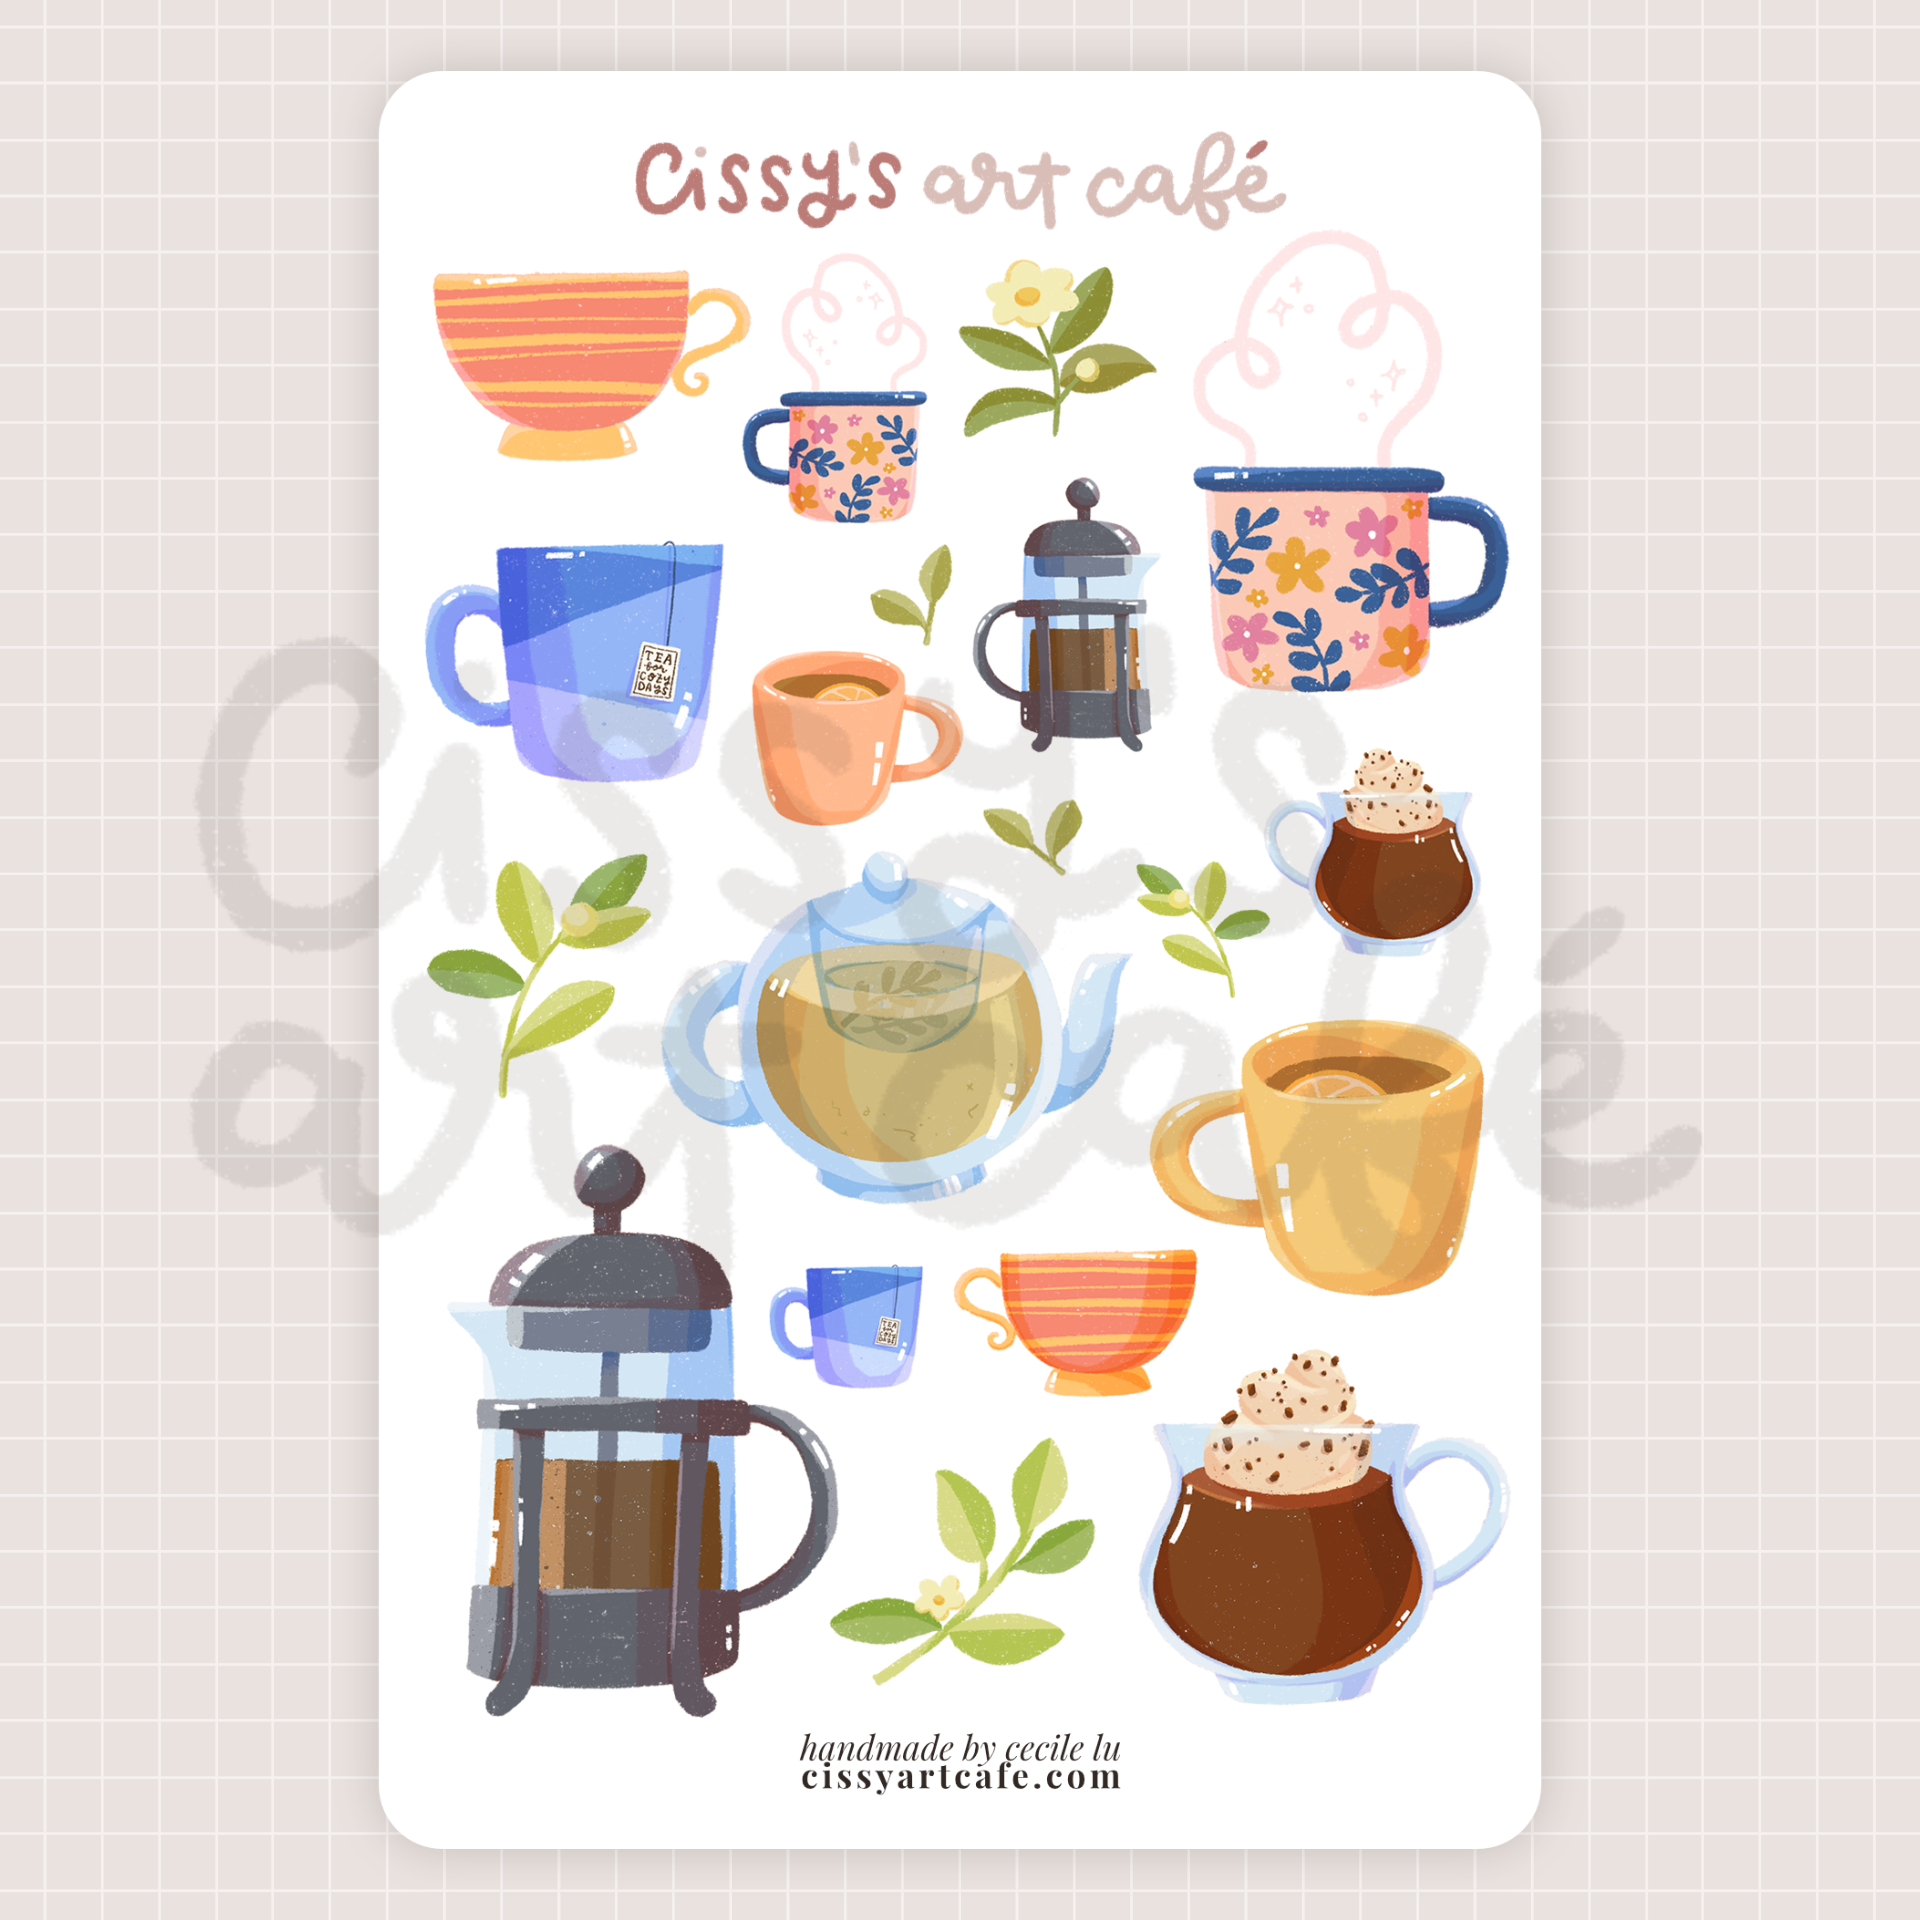 cozy beverages sticker sheet @ cissy's art café